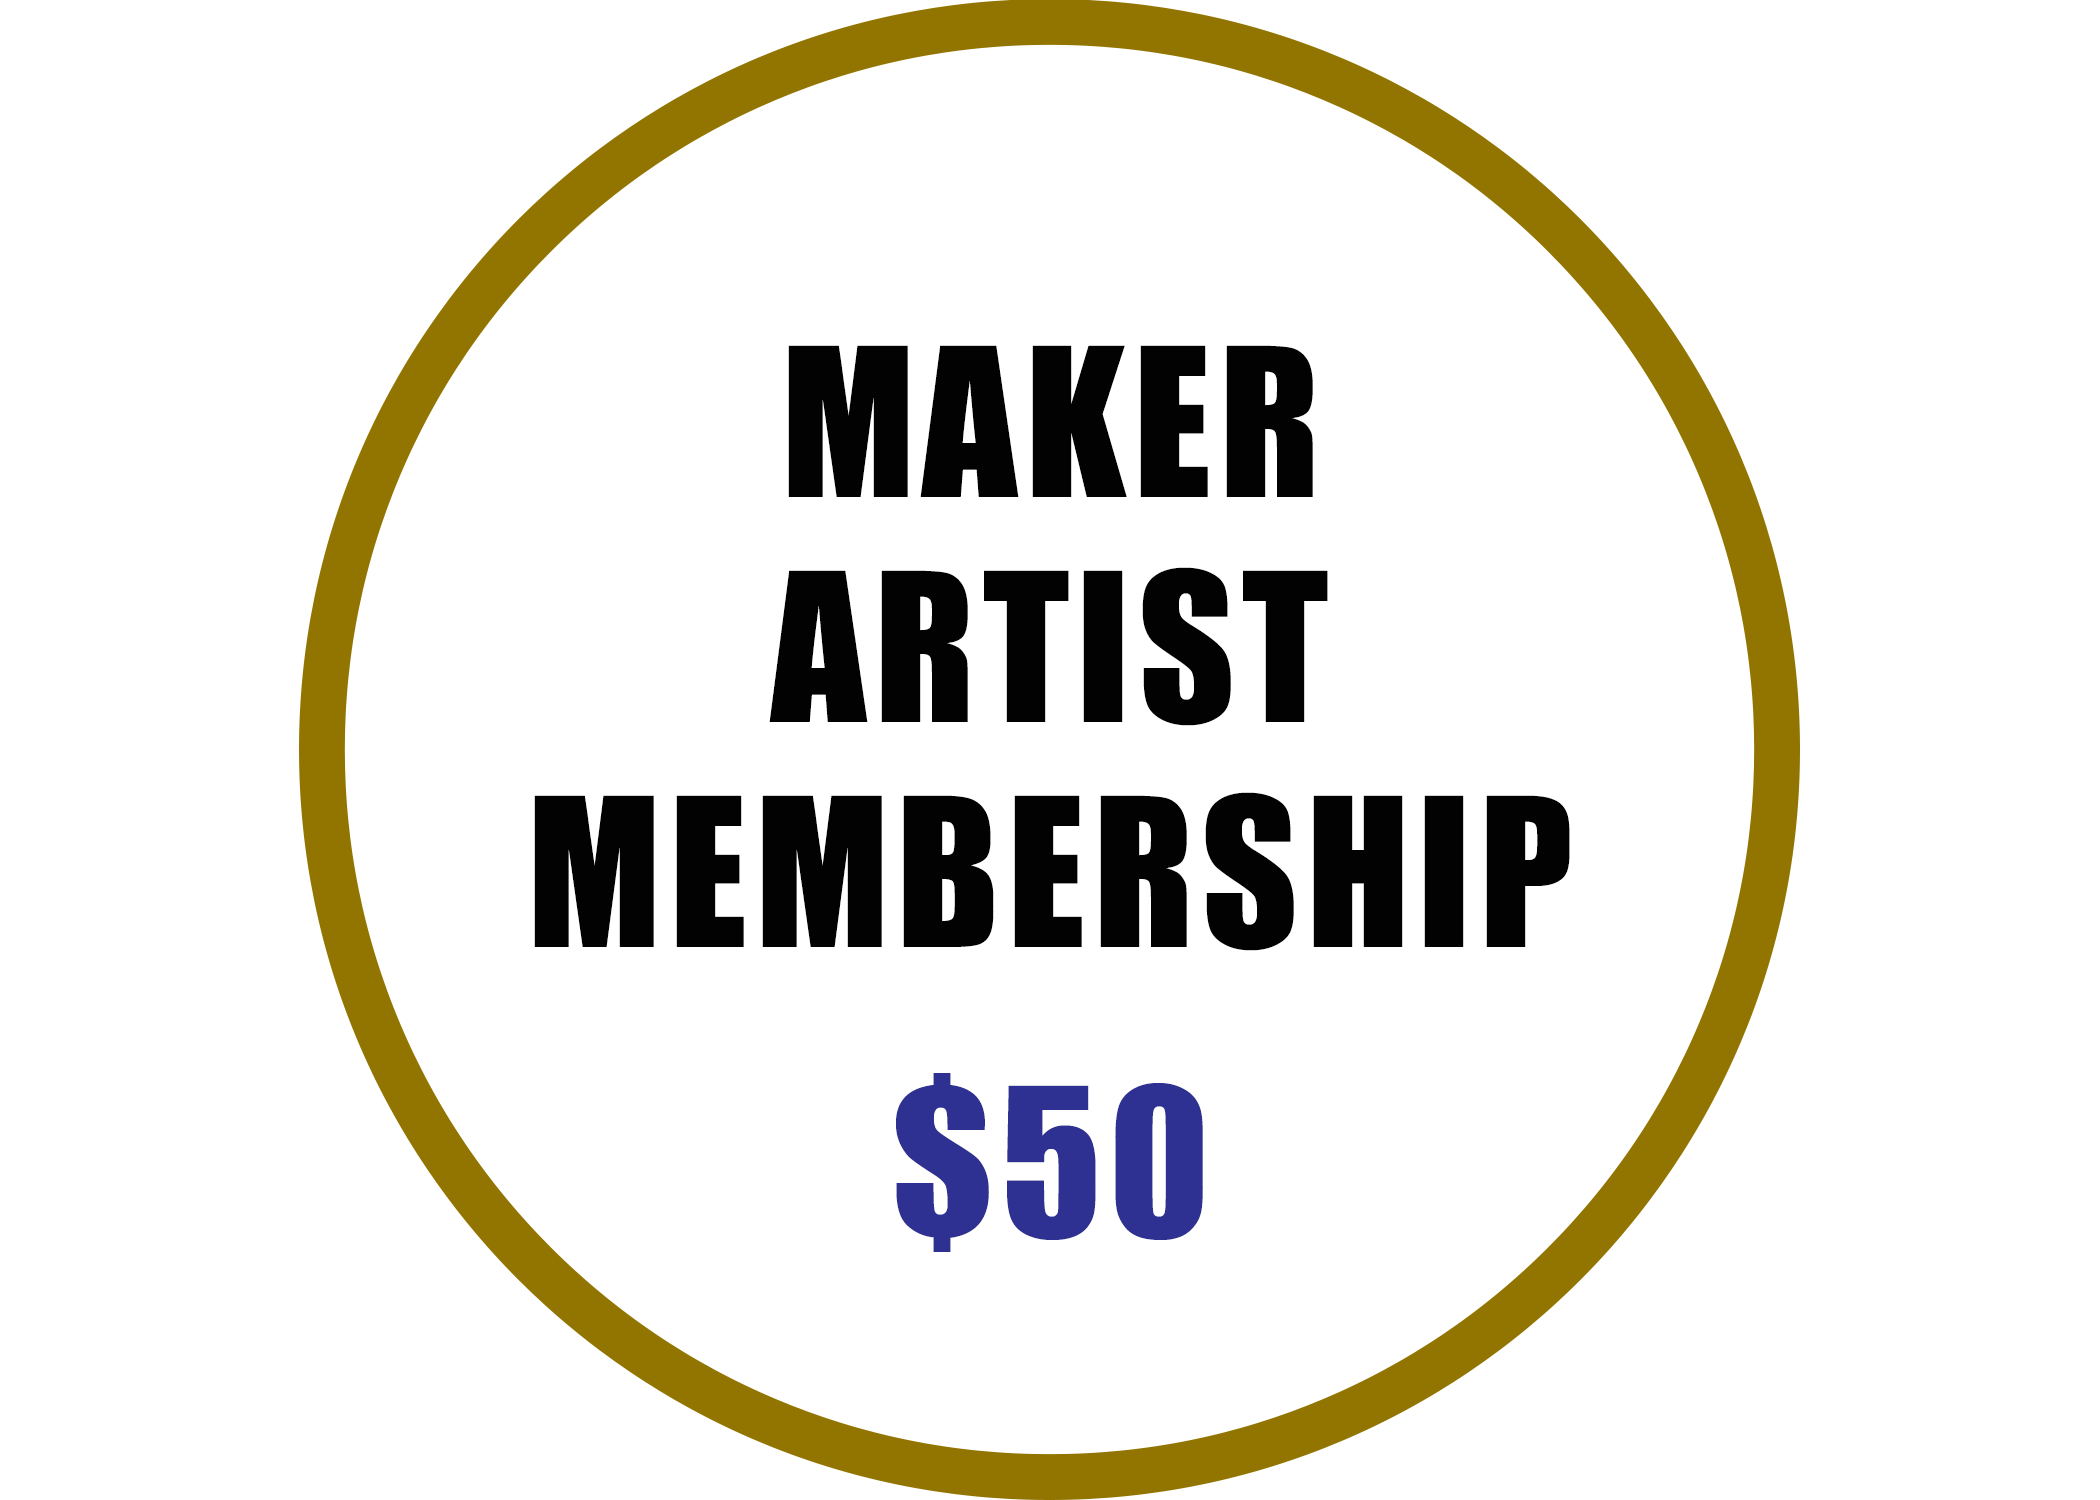 Maker Artist Membership benefits include:  -1 free market for the 2019 Baton Rouge Arts Market *This is subject to the artist being juried into the market -Automatic Eligibility to participate in ancillary markets -Free admission to market vendor classes and 2019 Arts Summit -Listing on Artist Roster on ACGBR Website -Discounted Event Rental Space -Voting Rights at Annual Meeting -Invitation to Networking Events Hosted by ACGBR